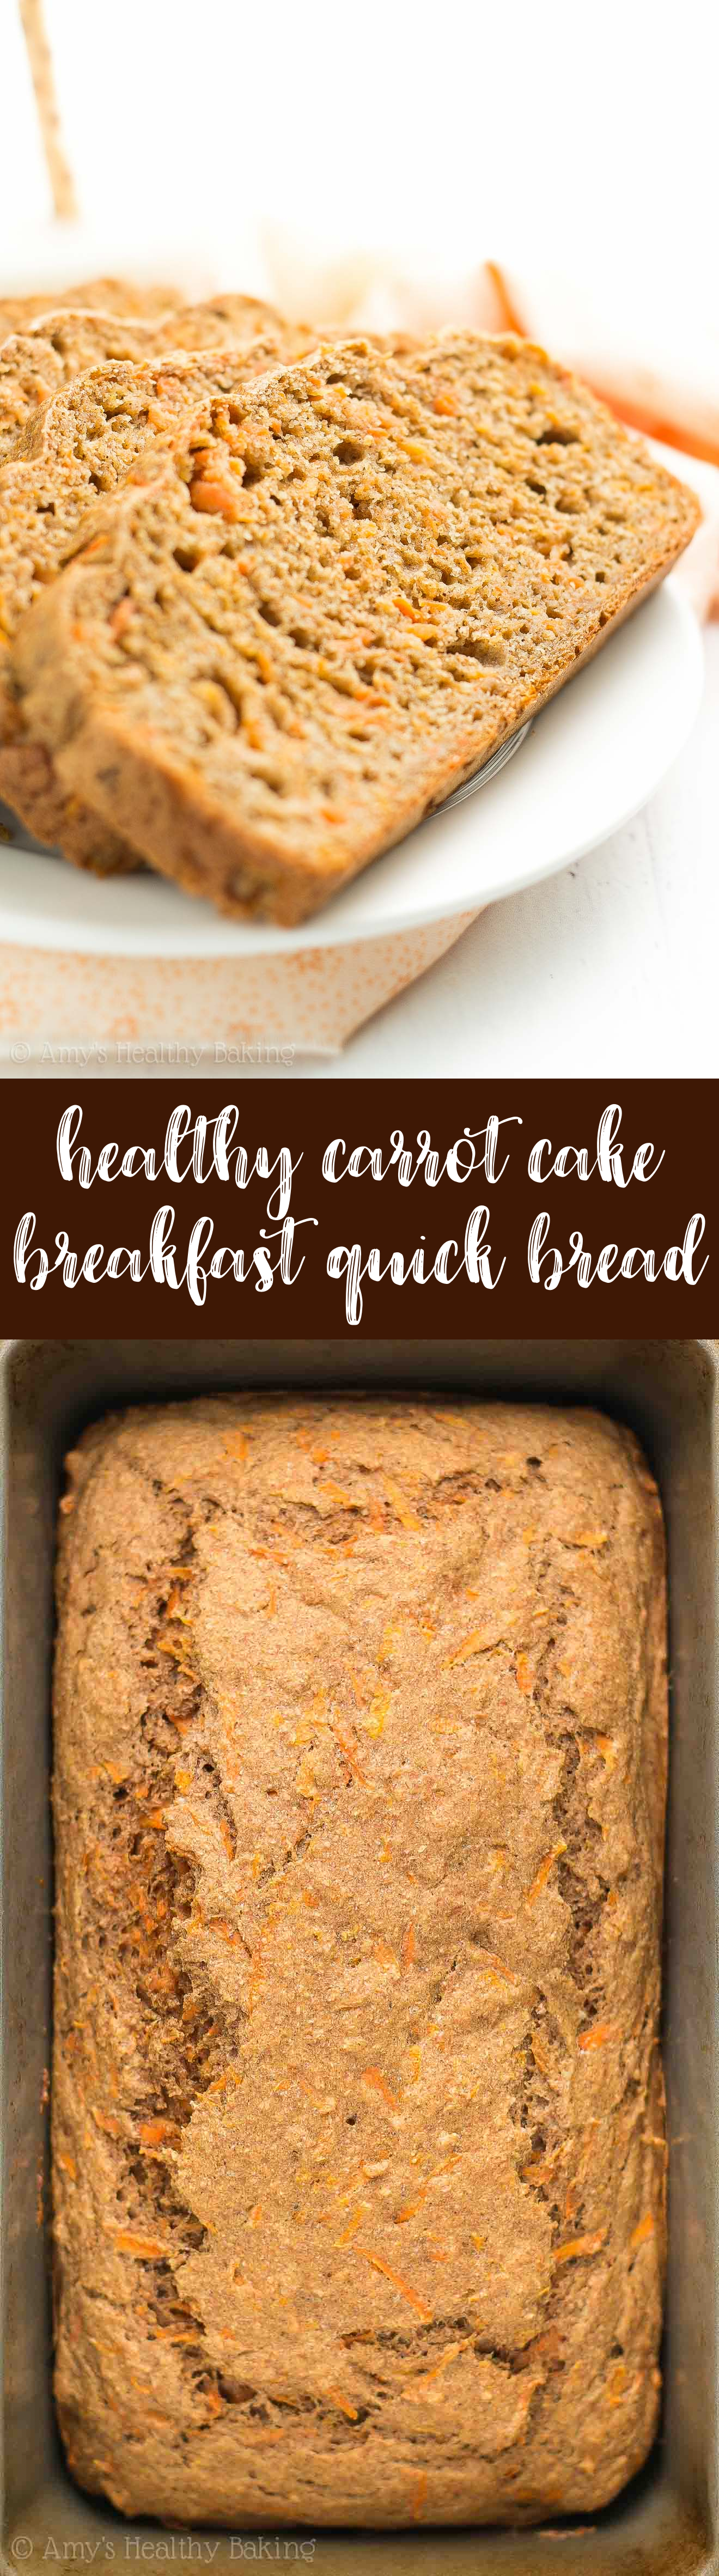 recipe: healthy carrot bread recipe [29]